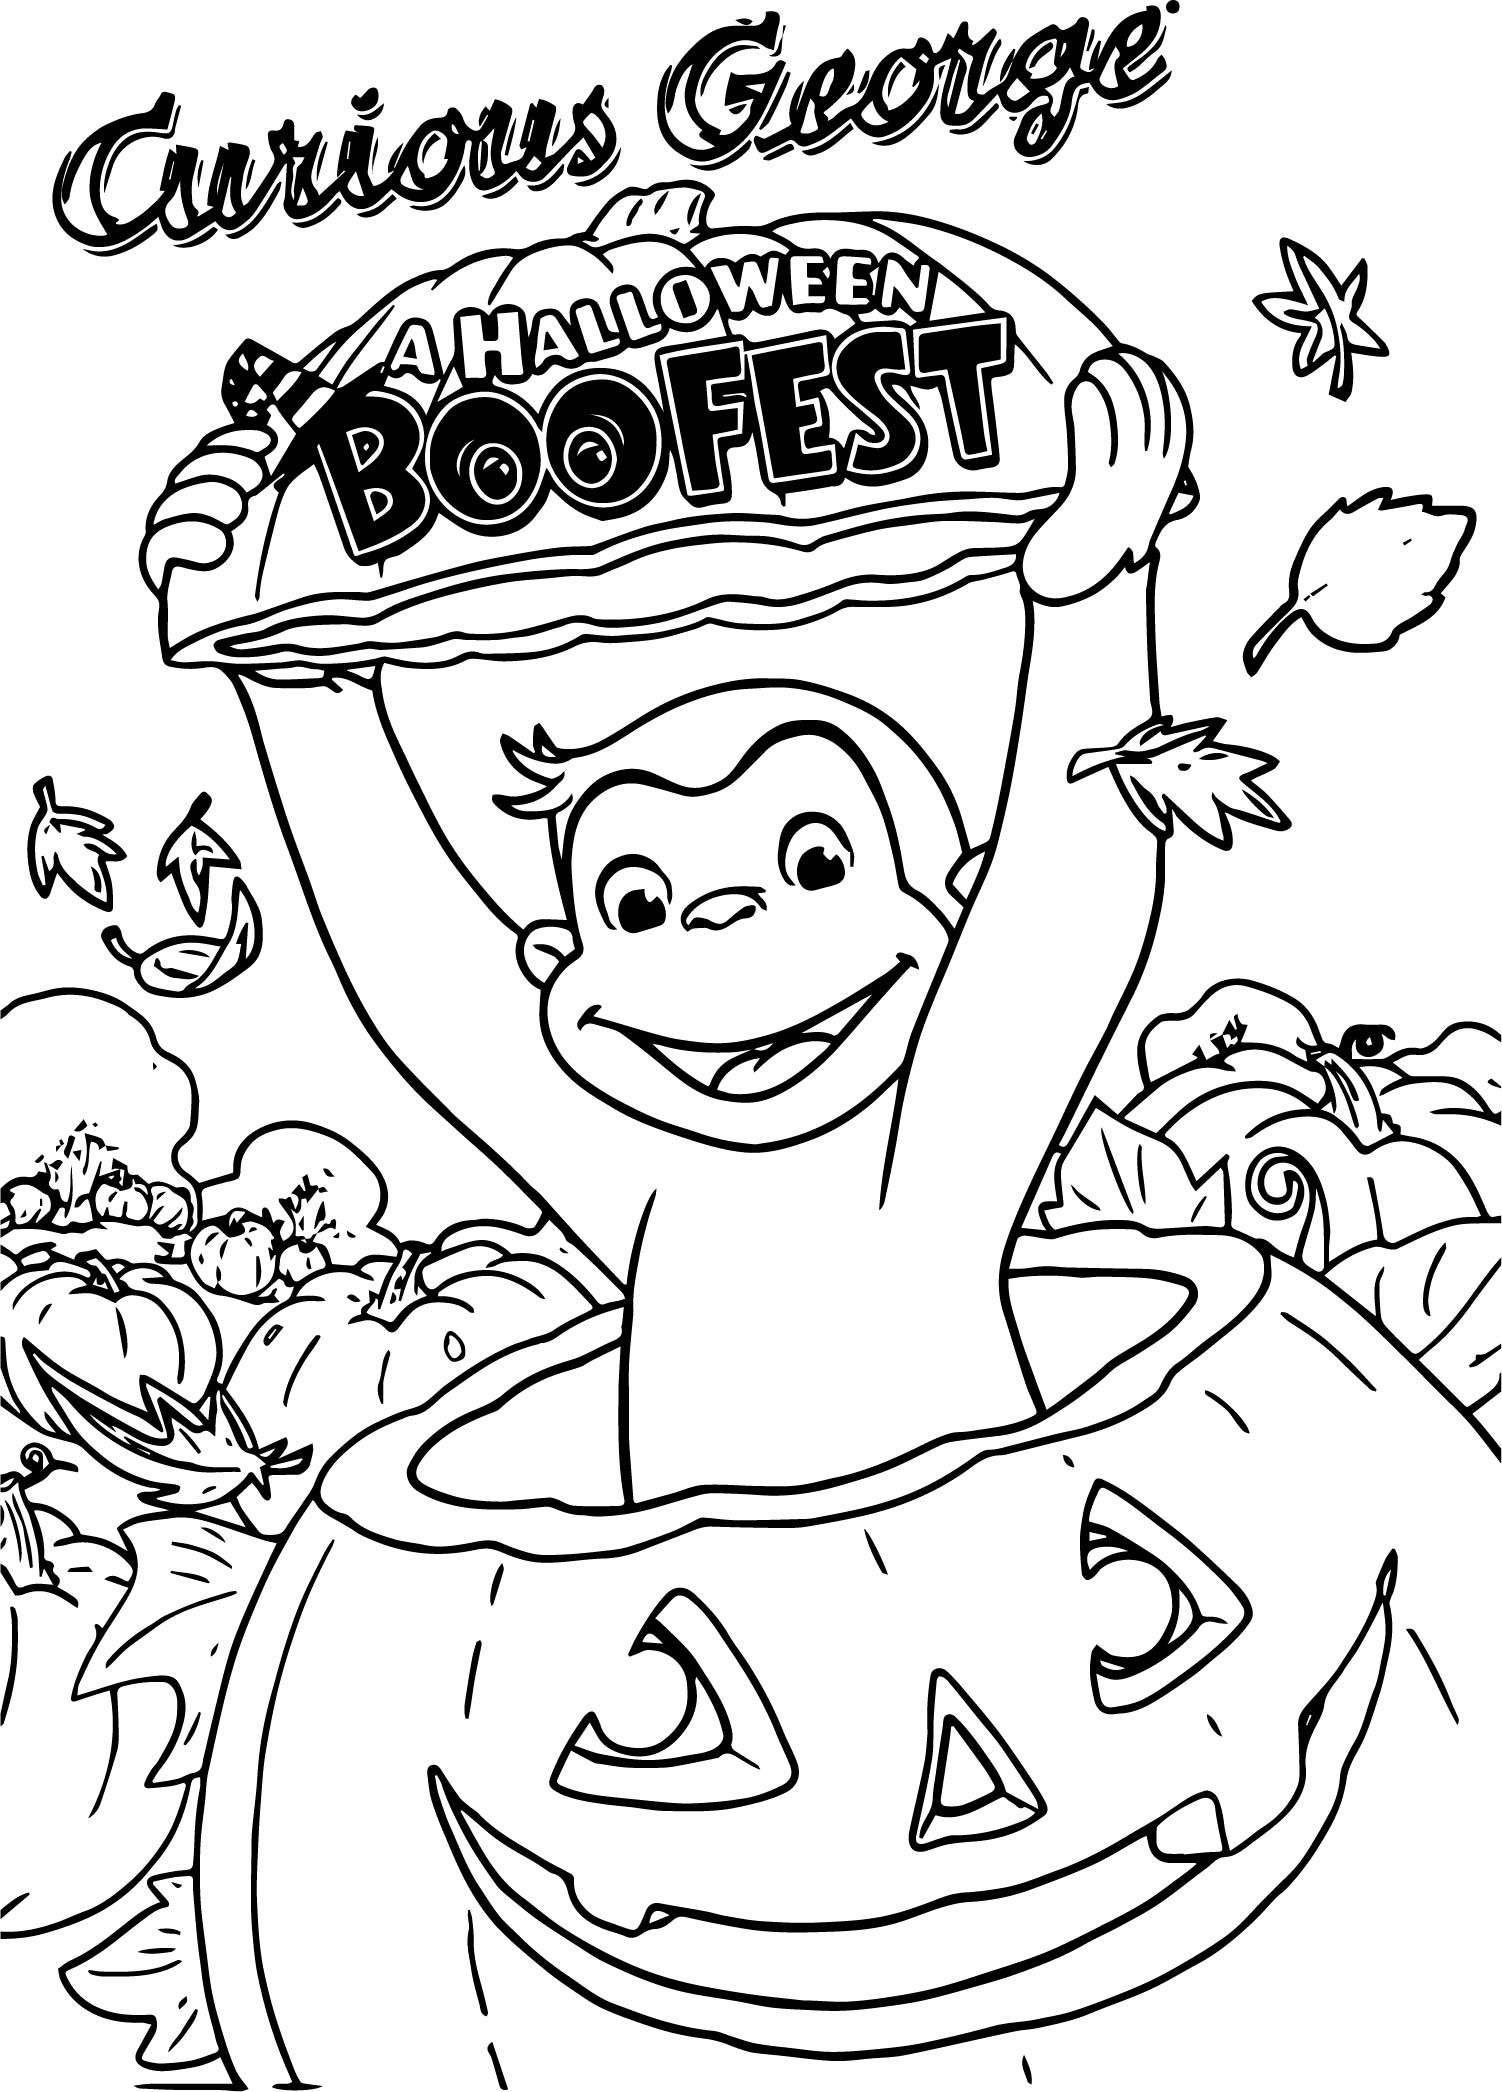 Awesome Curious George A Halloween Boofest Coloring Page Curious George Coloring Pages Pumpkin Coloring Pages Fall Coloring Pages